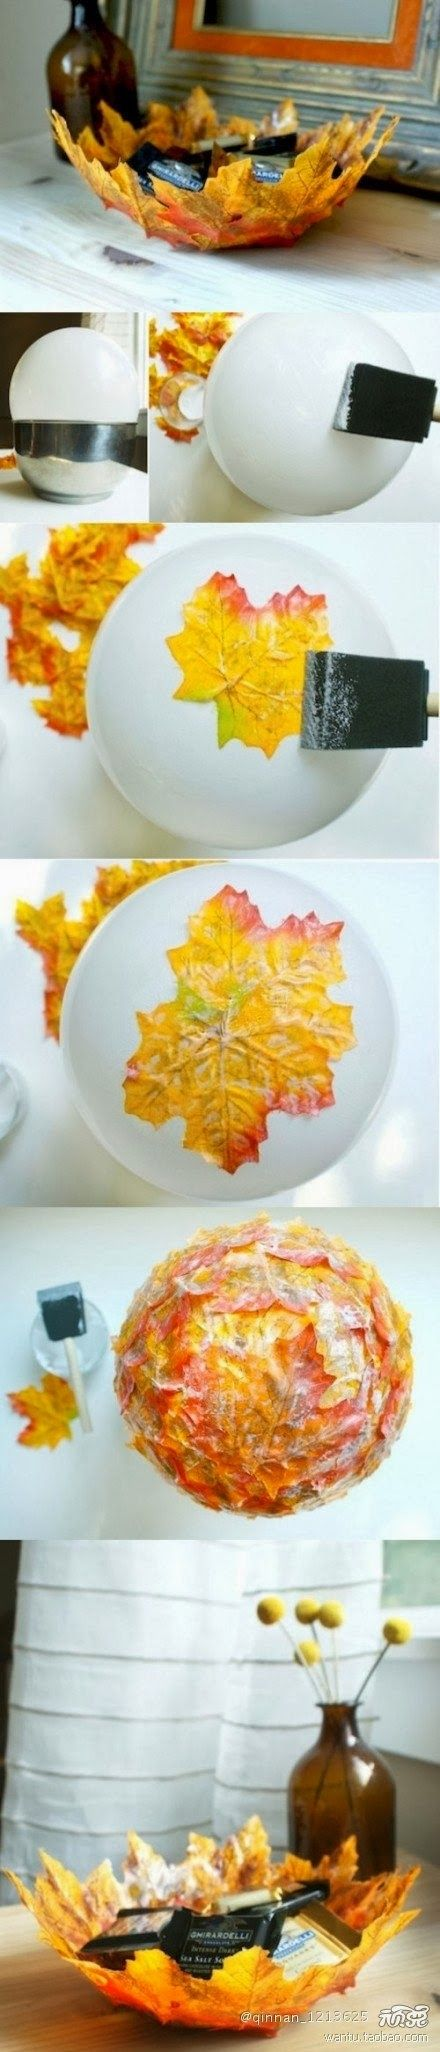 crafts DIY 2014 style 2014 new trends